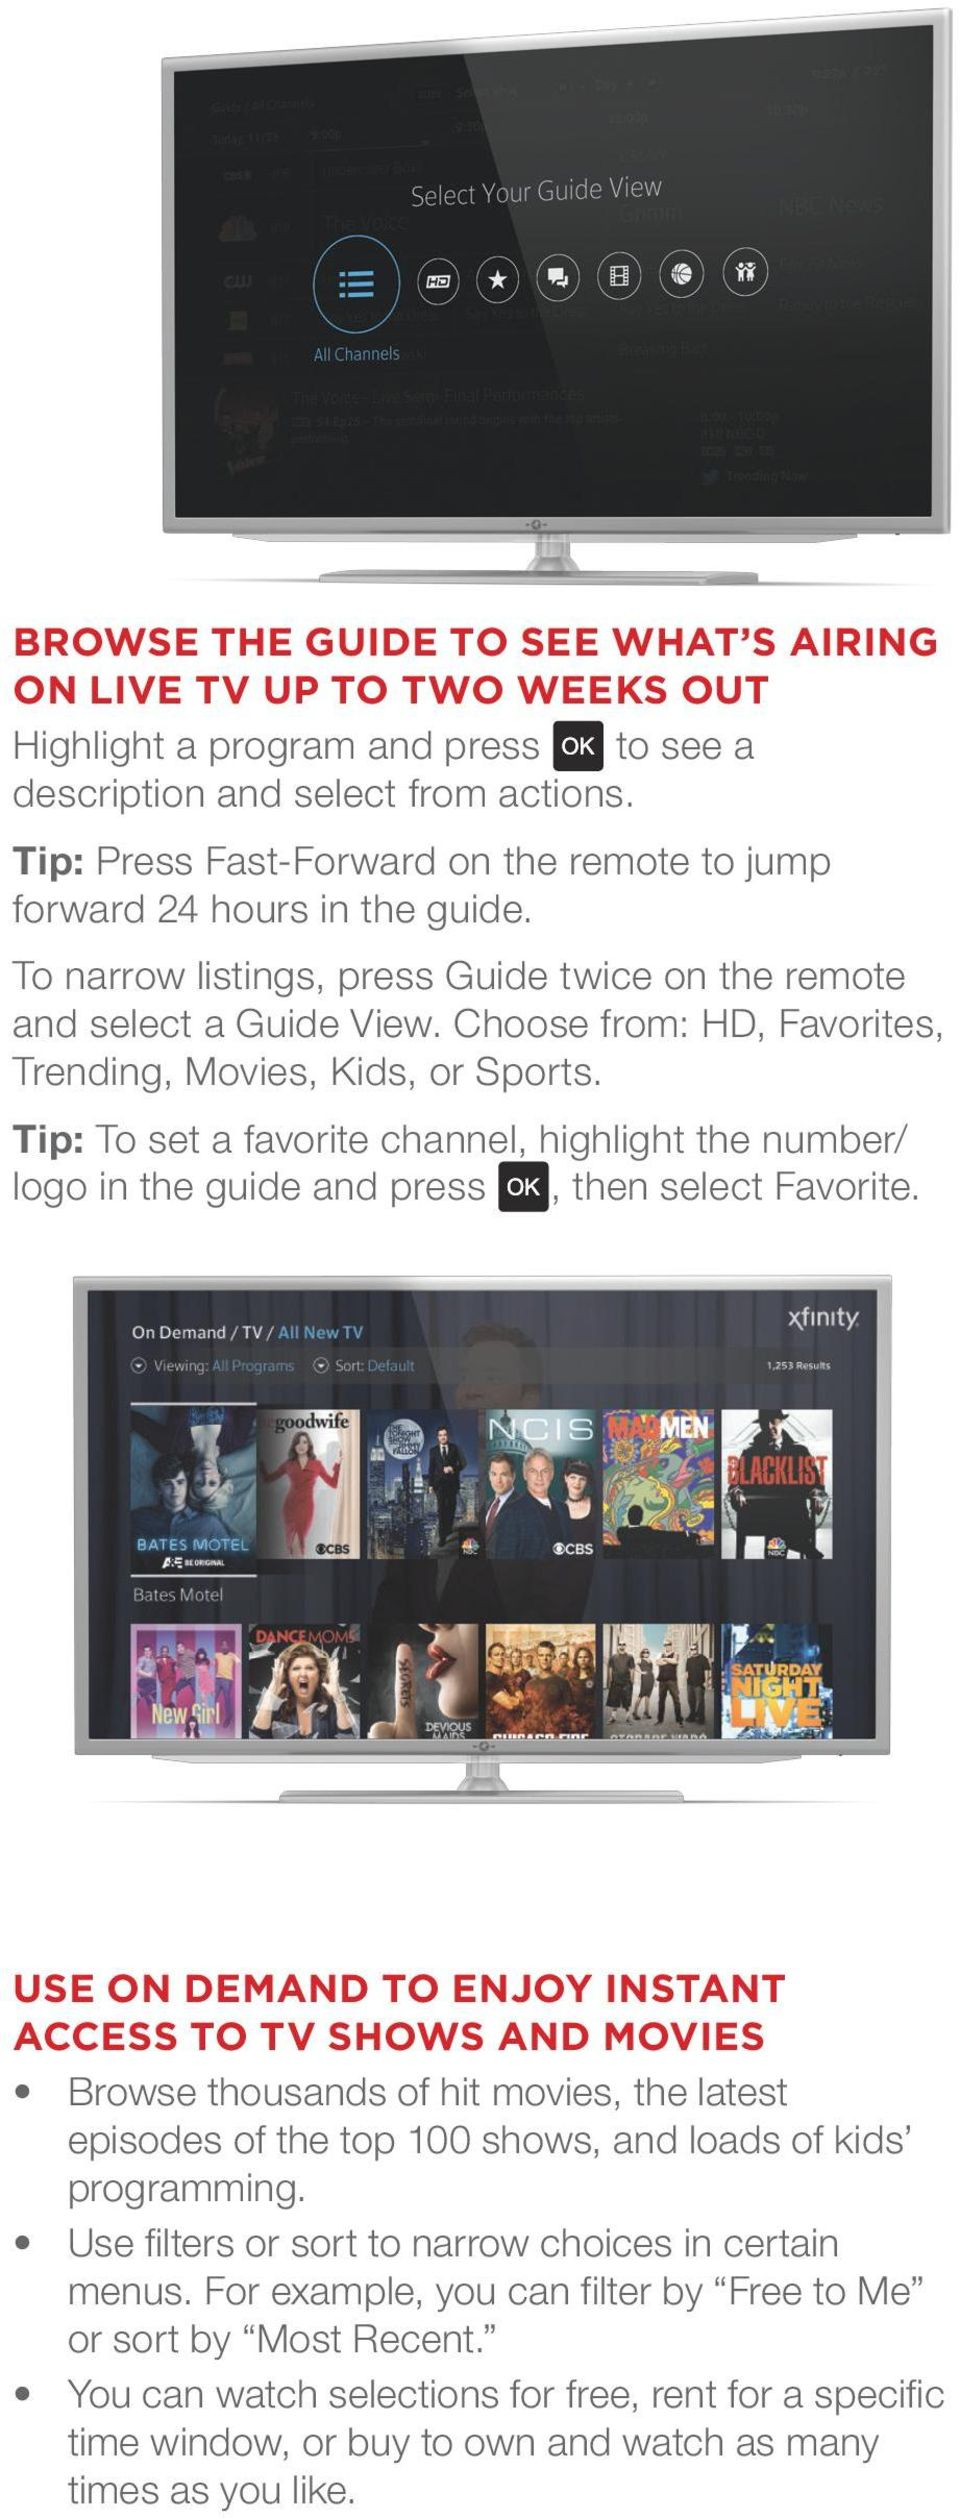 Choose from: HD, Favorites, Trending, Movies, Kids, or Sports. Tip: To set a favorite channel, highlight the number/ logo in the guide and press, then select Favorite.